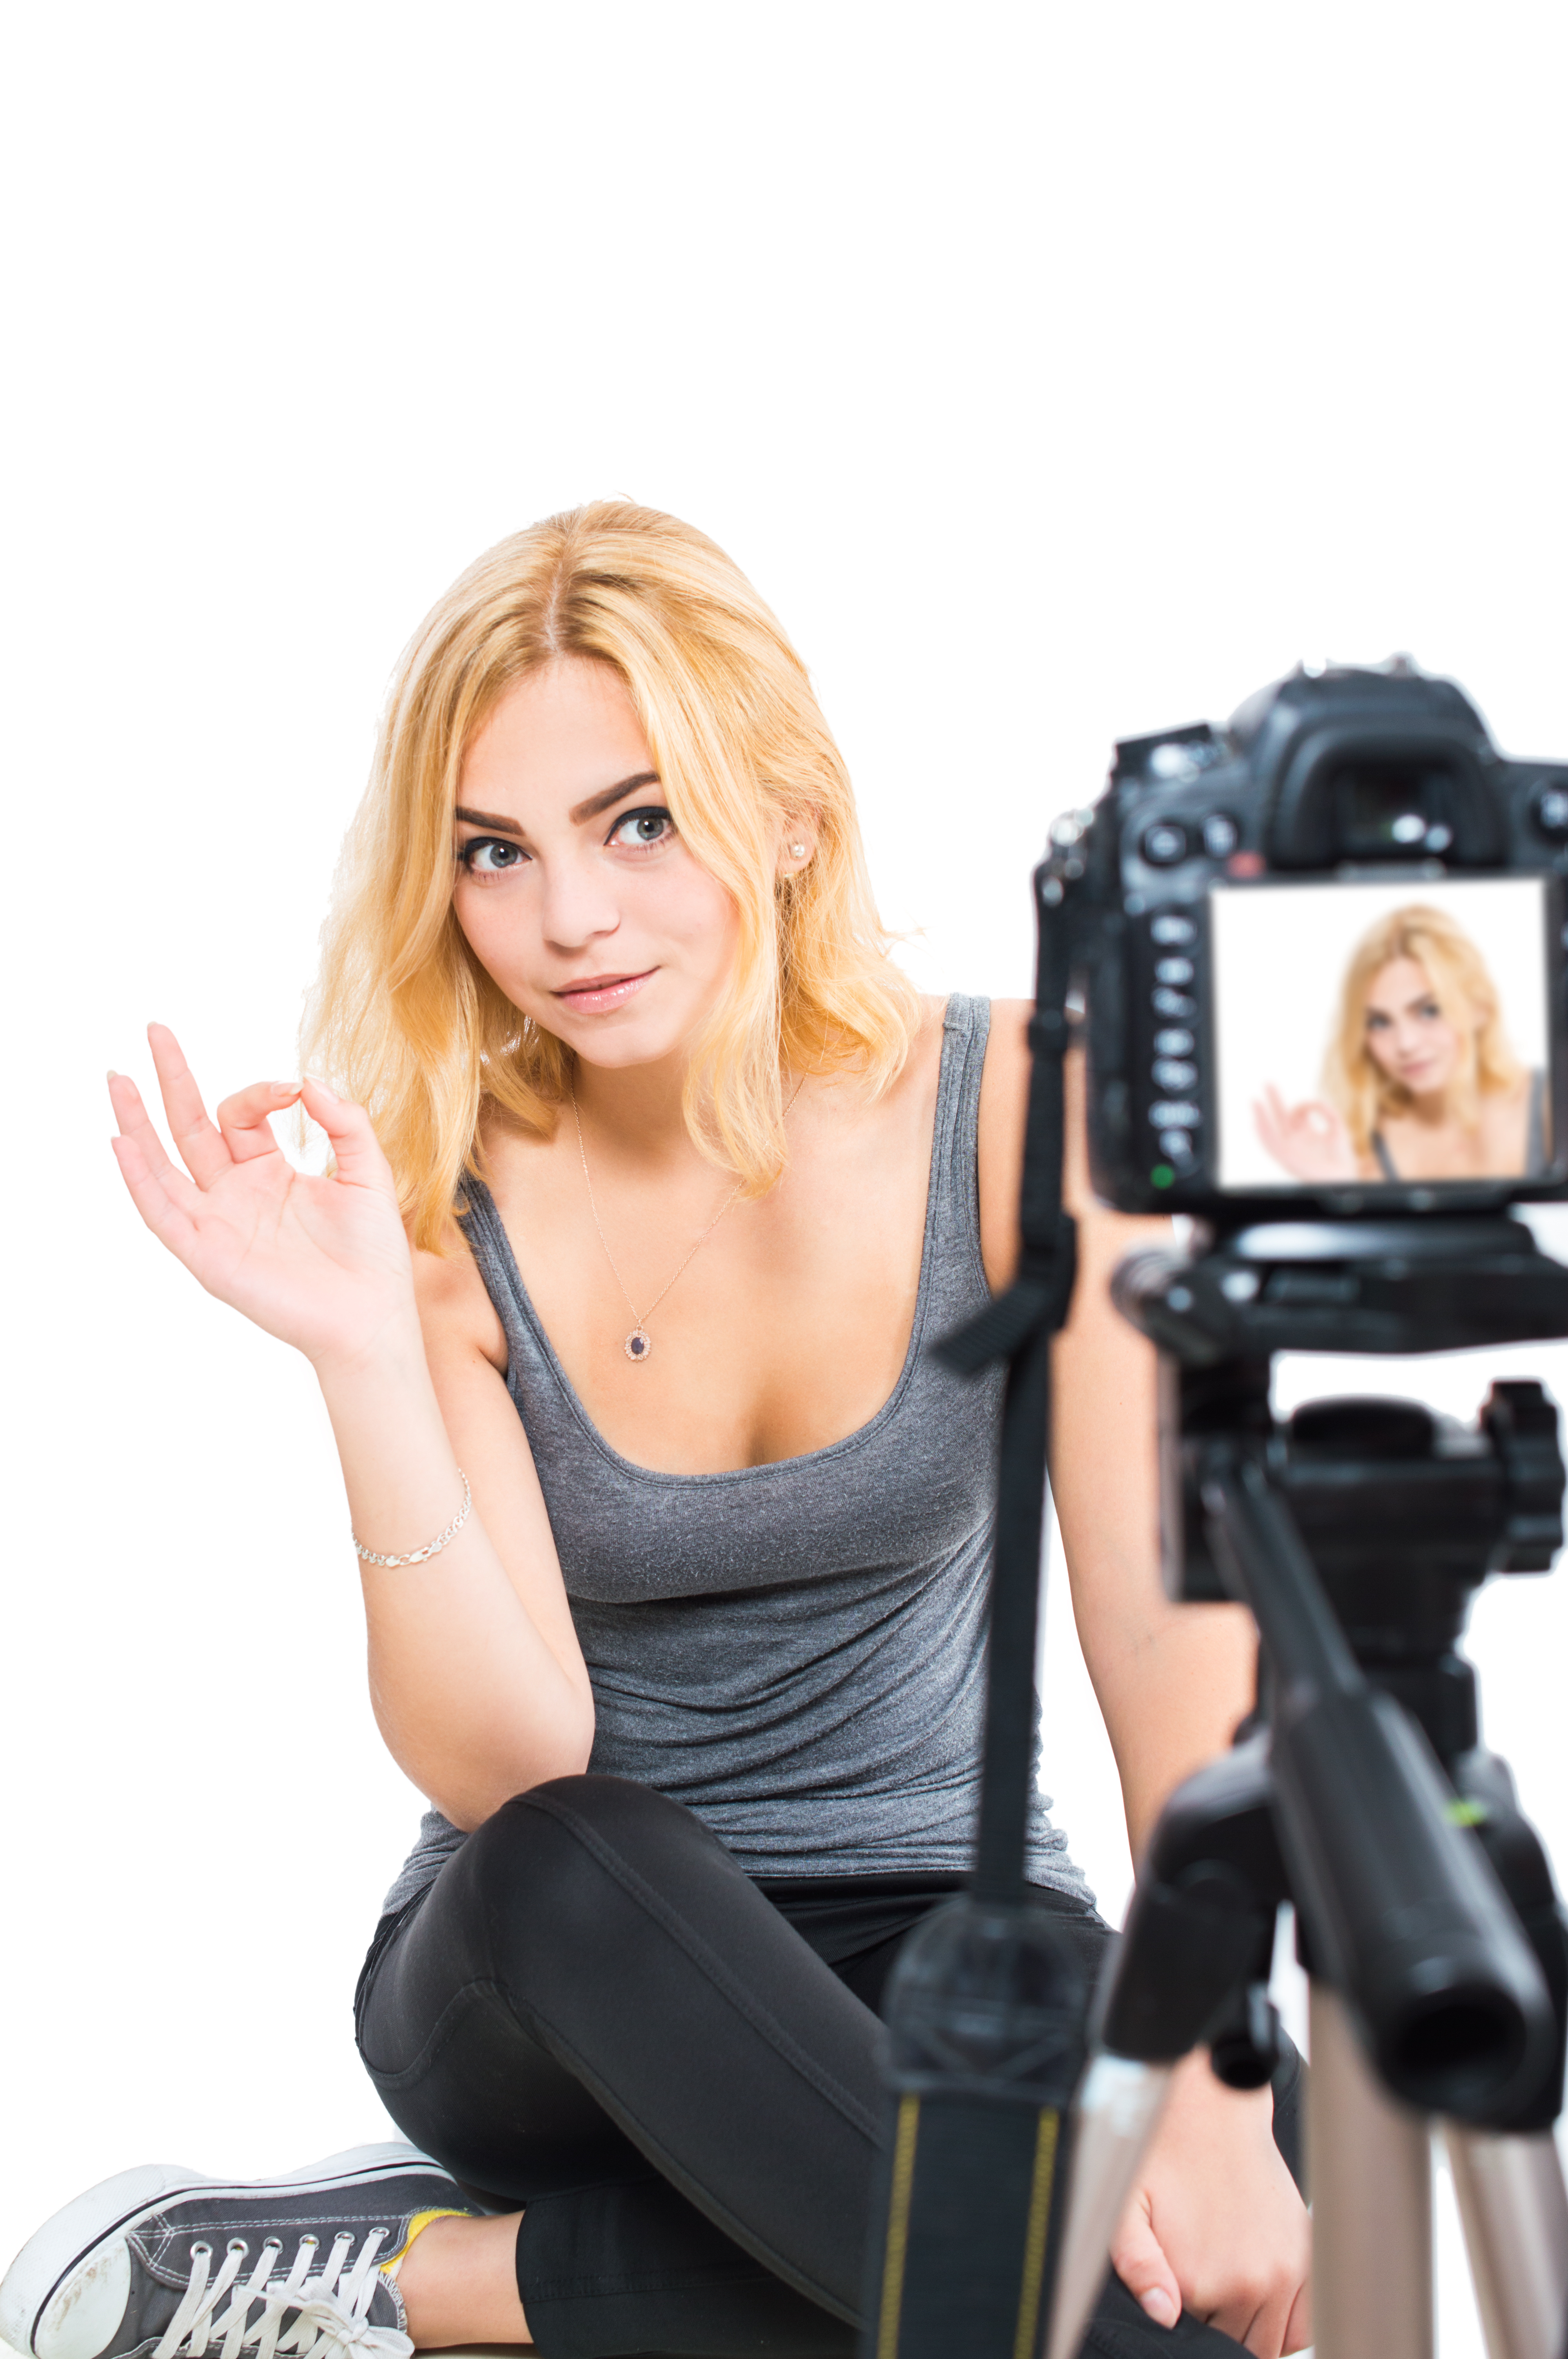 Woman blogger relieves herself on camera. On white, isolated background.